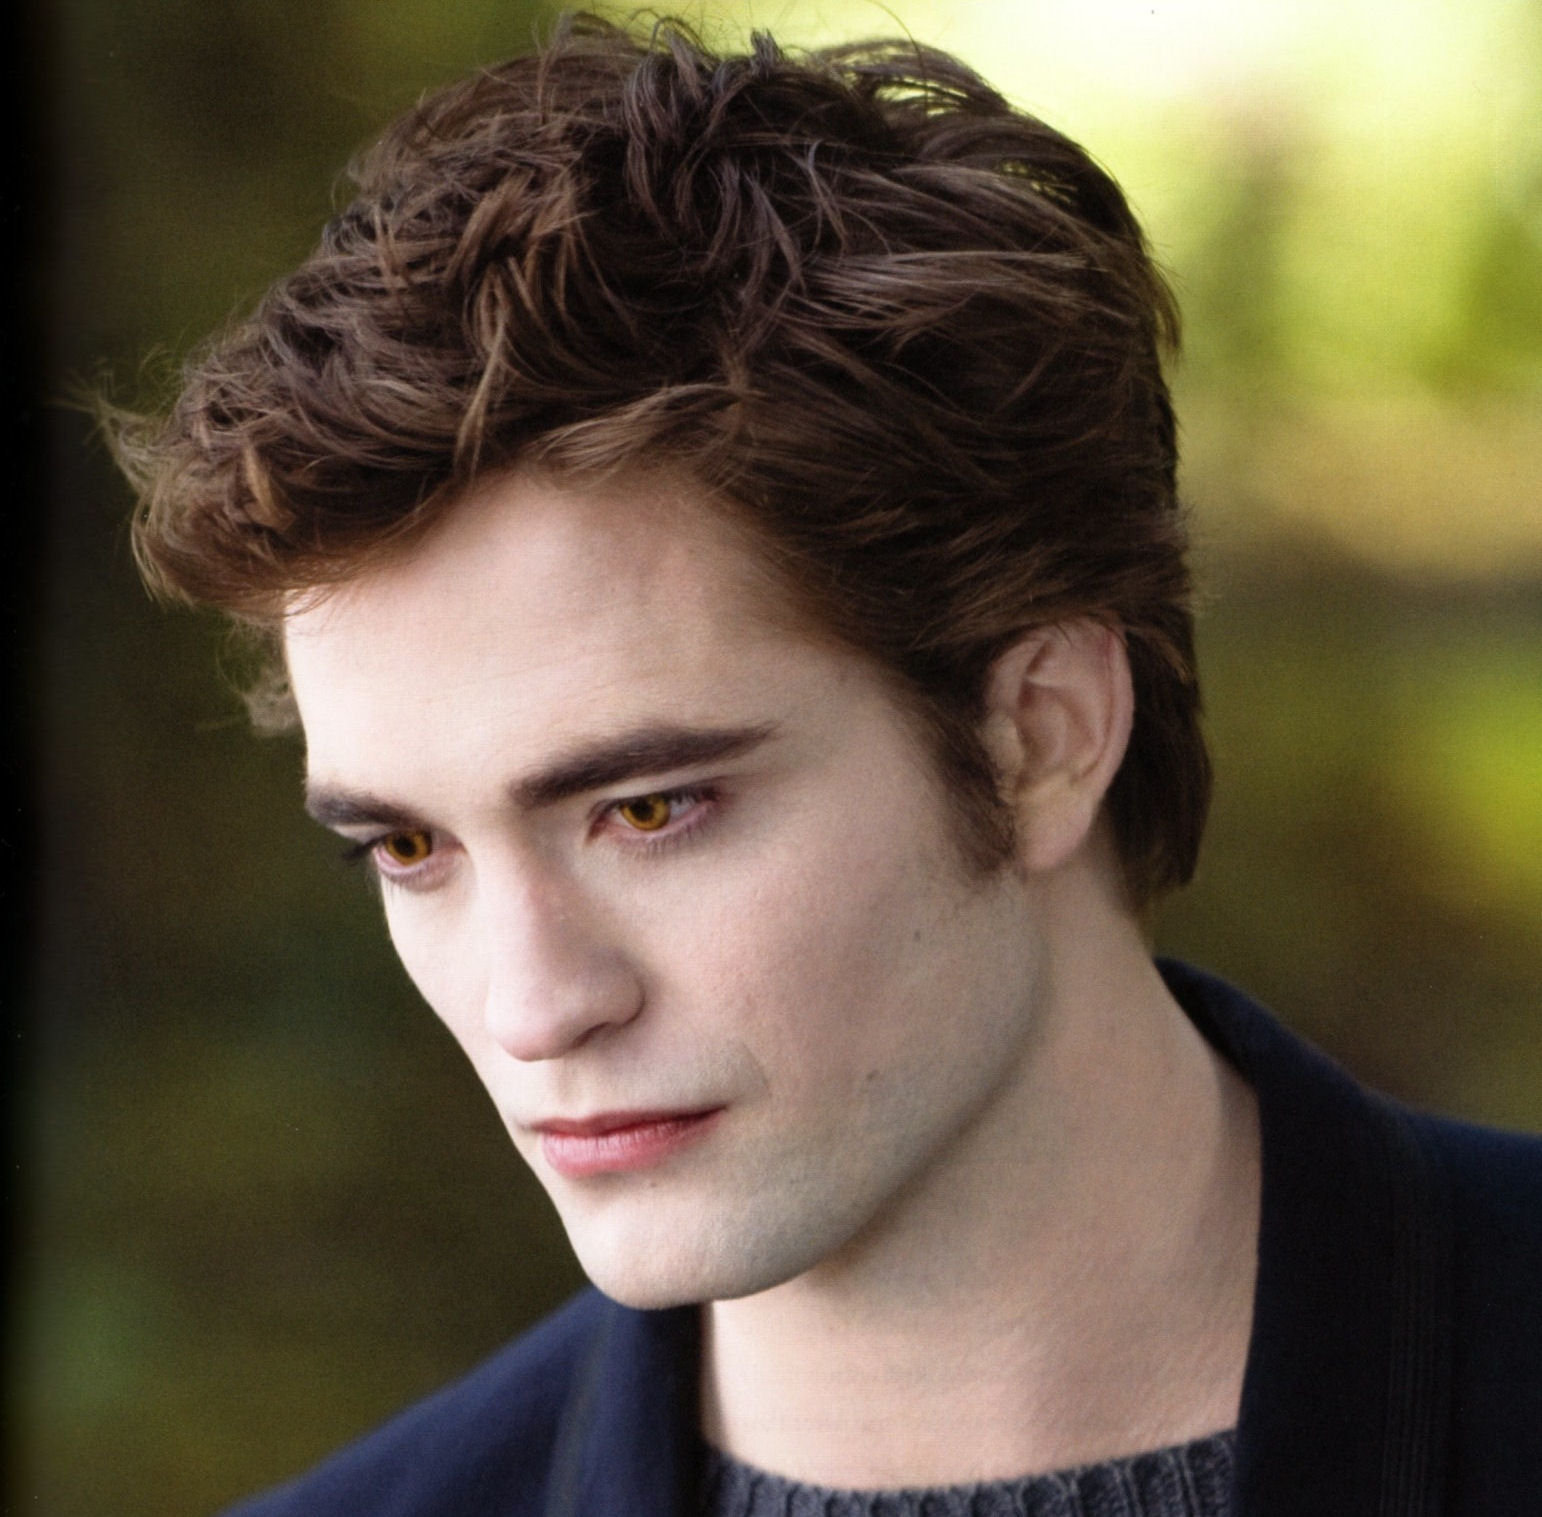 Edward edward cullen photo 27673809 fanpop Twilight edward photos